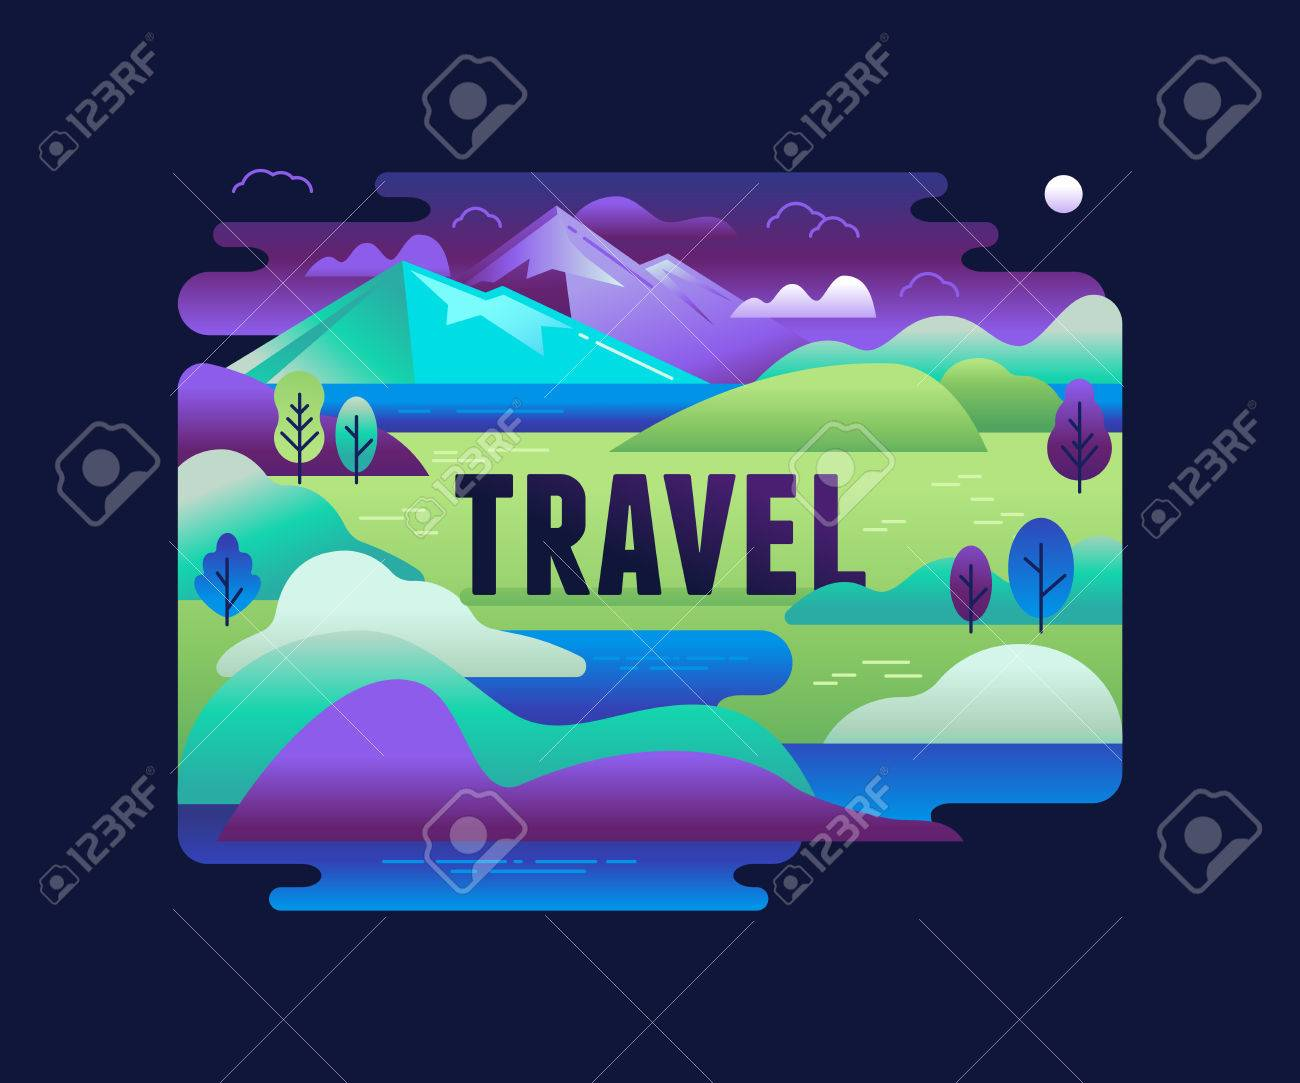 Vector illustration in trendy flat and linear style - background with green landscape and mountains - concept and design element for banners, infographics, greeting card - travel concept Banque d'images - 70965341